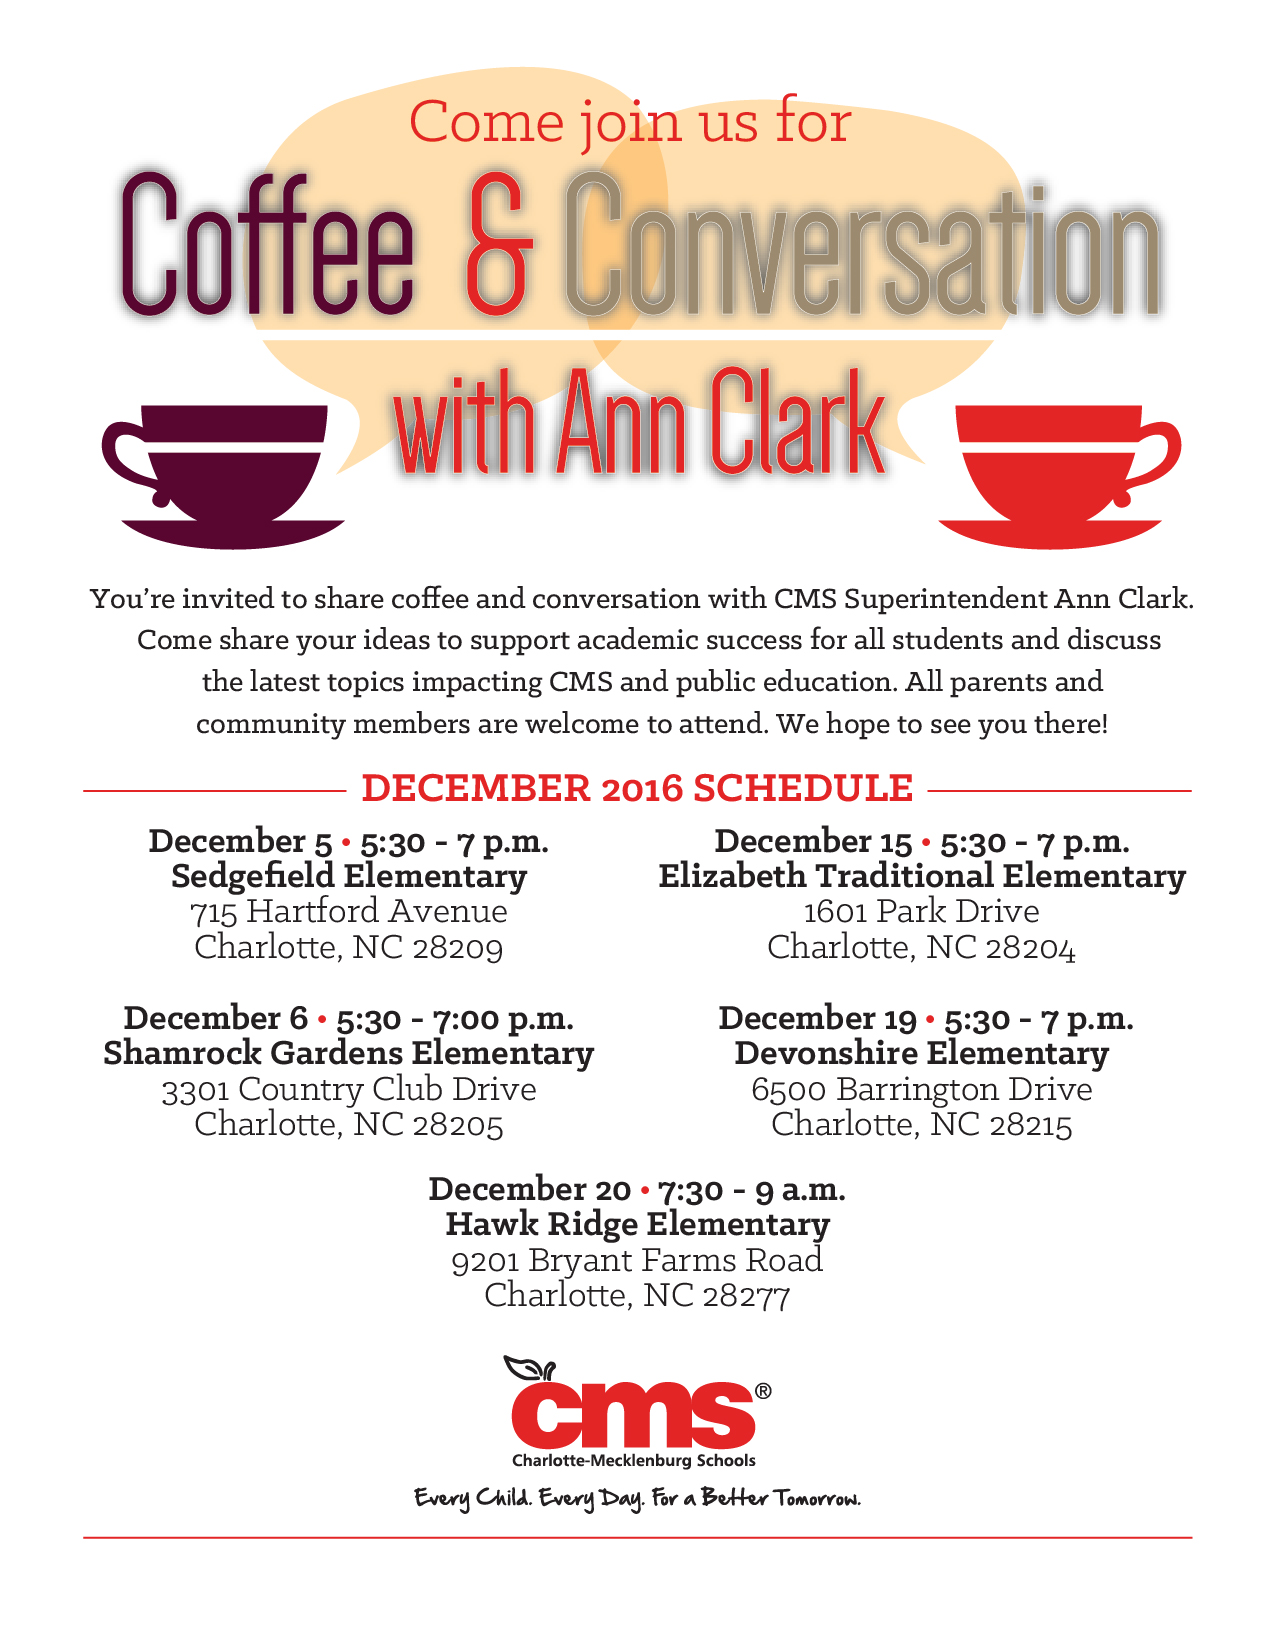 CMS_2016-17Coffee with Ann E-Flyer_DecDates_Revised12.5.16.jpg